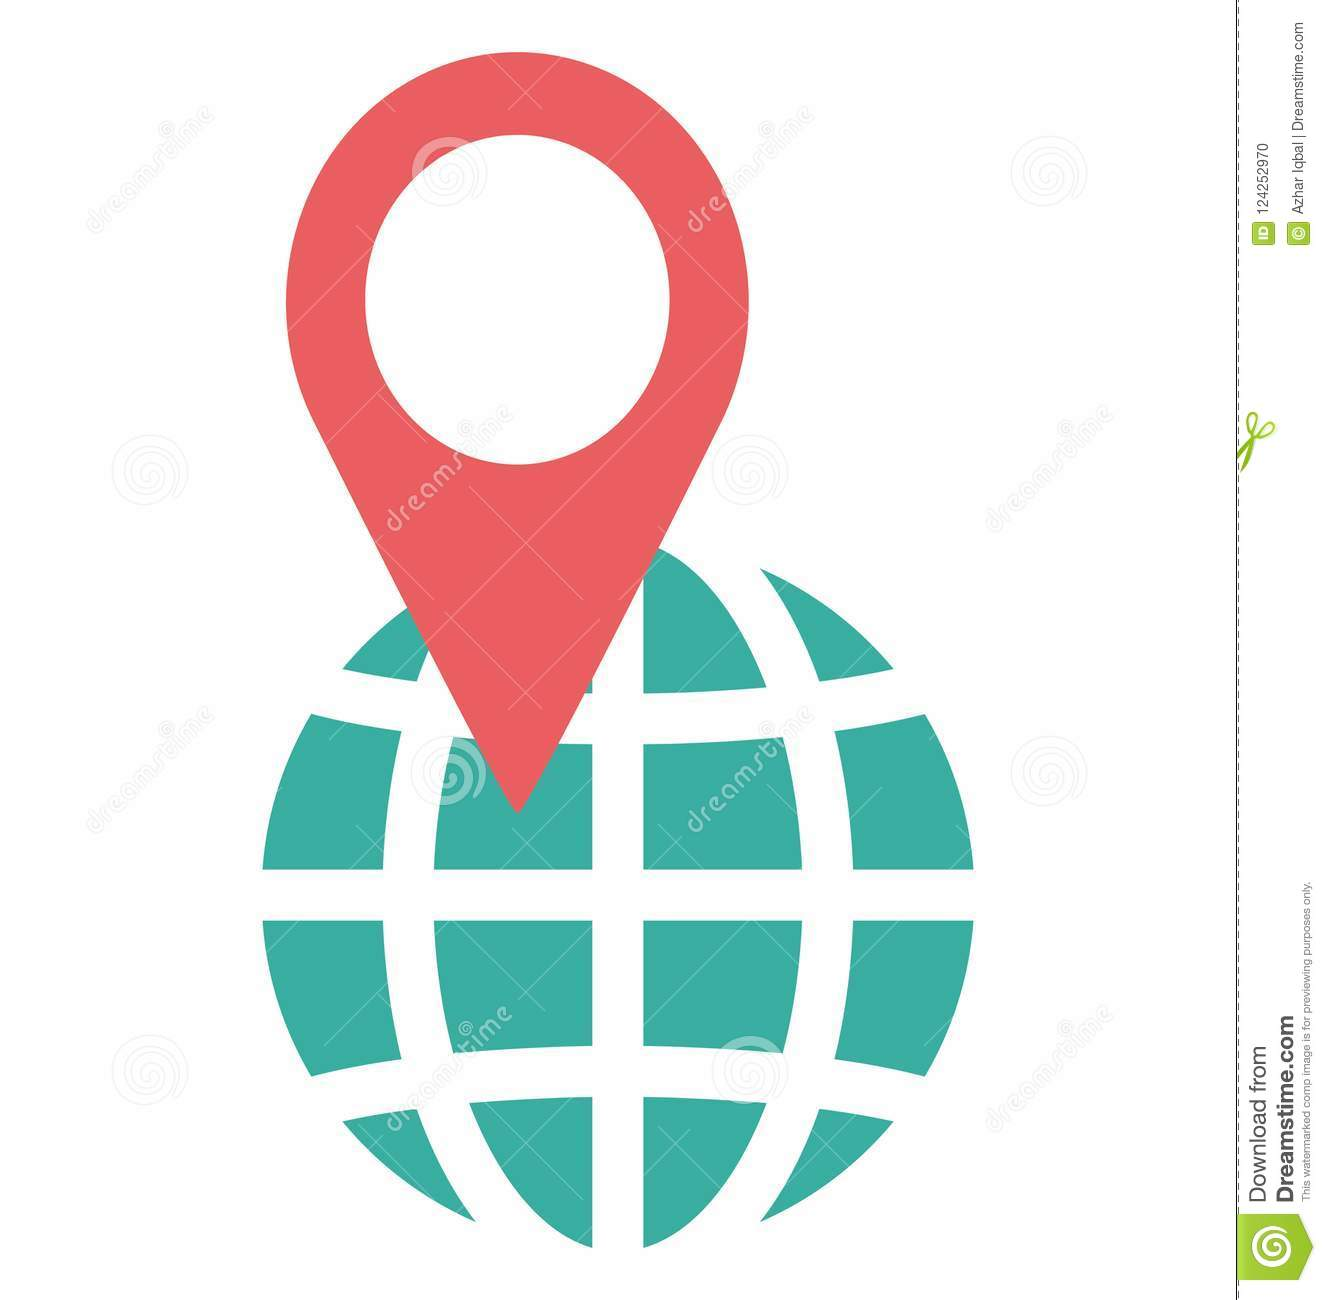 Map Locator Color Vector Isolated Icon Editable Stock ... on karratha western australia map, address map, plan your road trip map, istanbul location on map, darfur location on map, hyderabad location on map, west us map, special purpose map, physical map, world map, grid map, walmart international locations map, key map, impz dubai location map, bihar india map, bank of america locations map, russia location map, france location map, islamabad location on map, lagos nigeria on map,